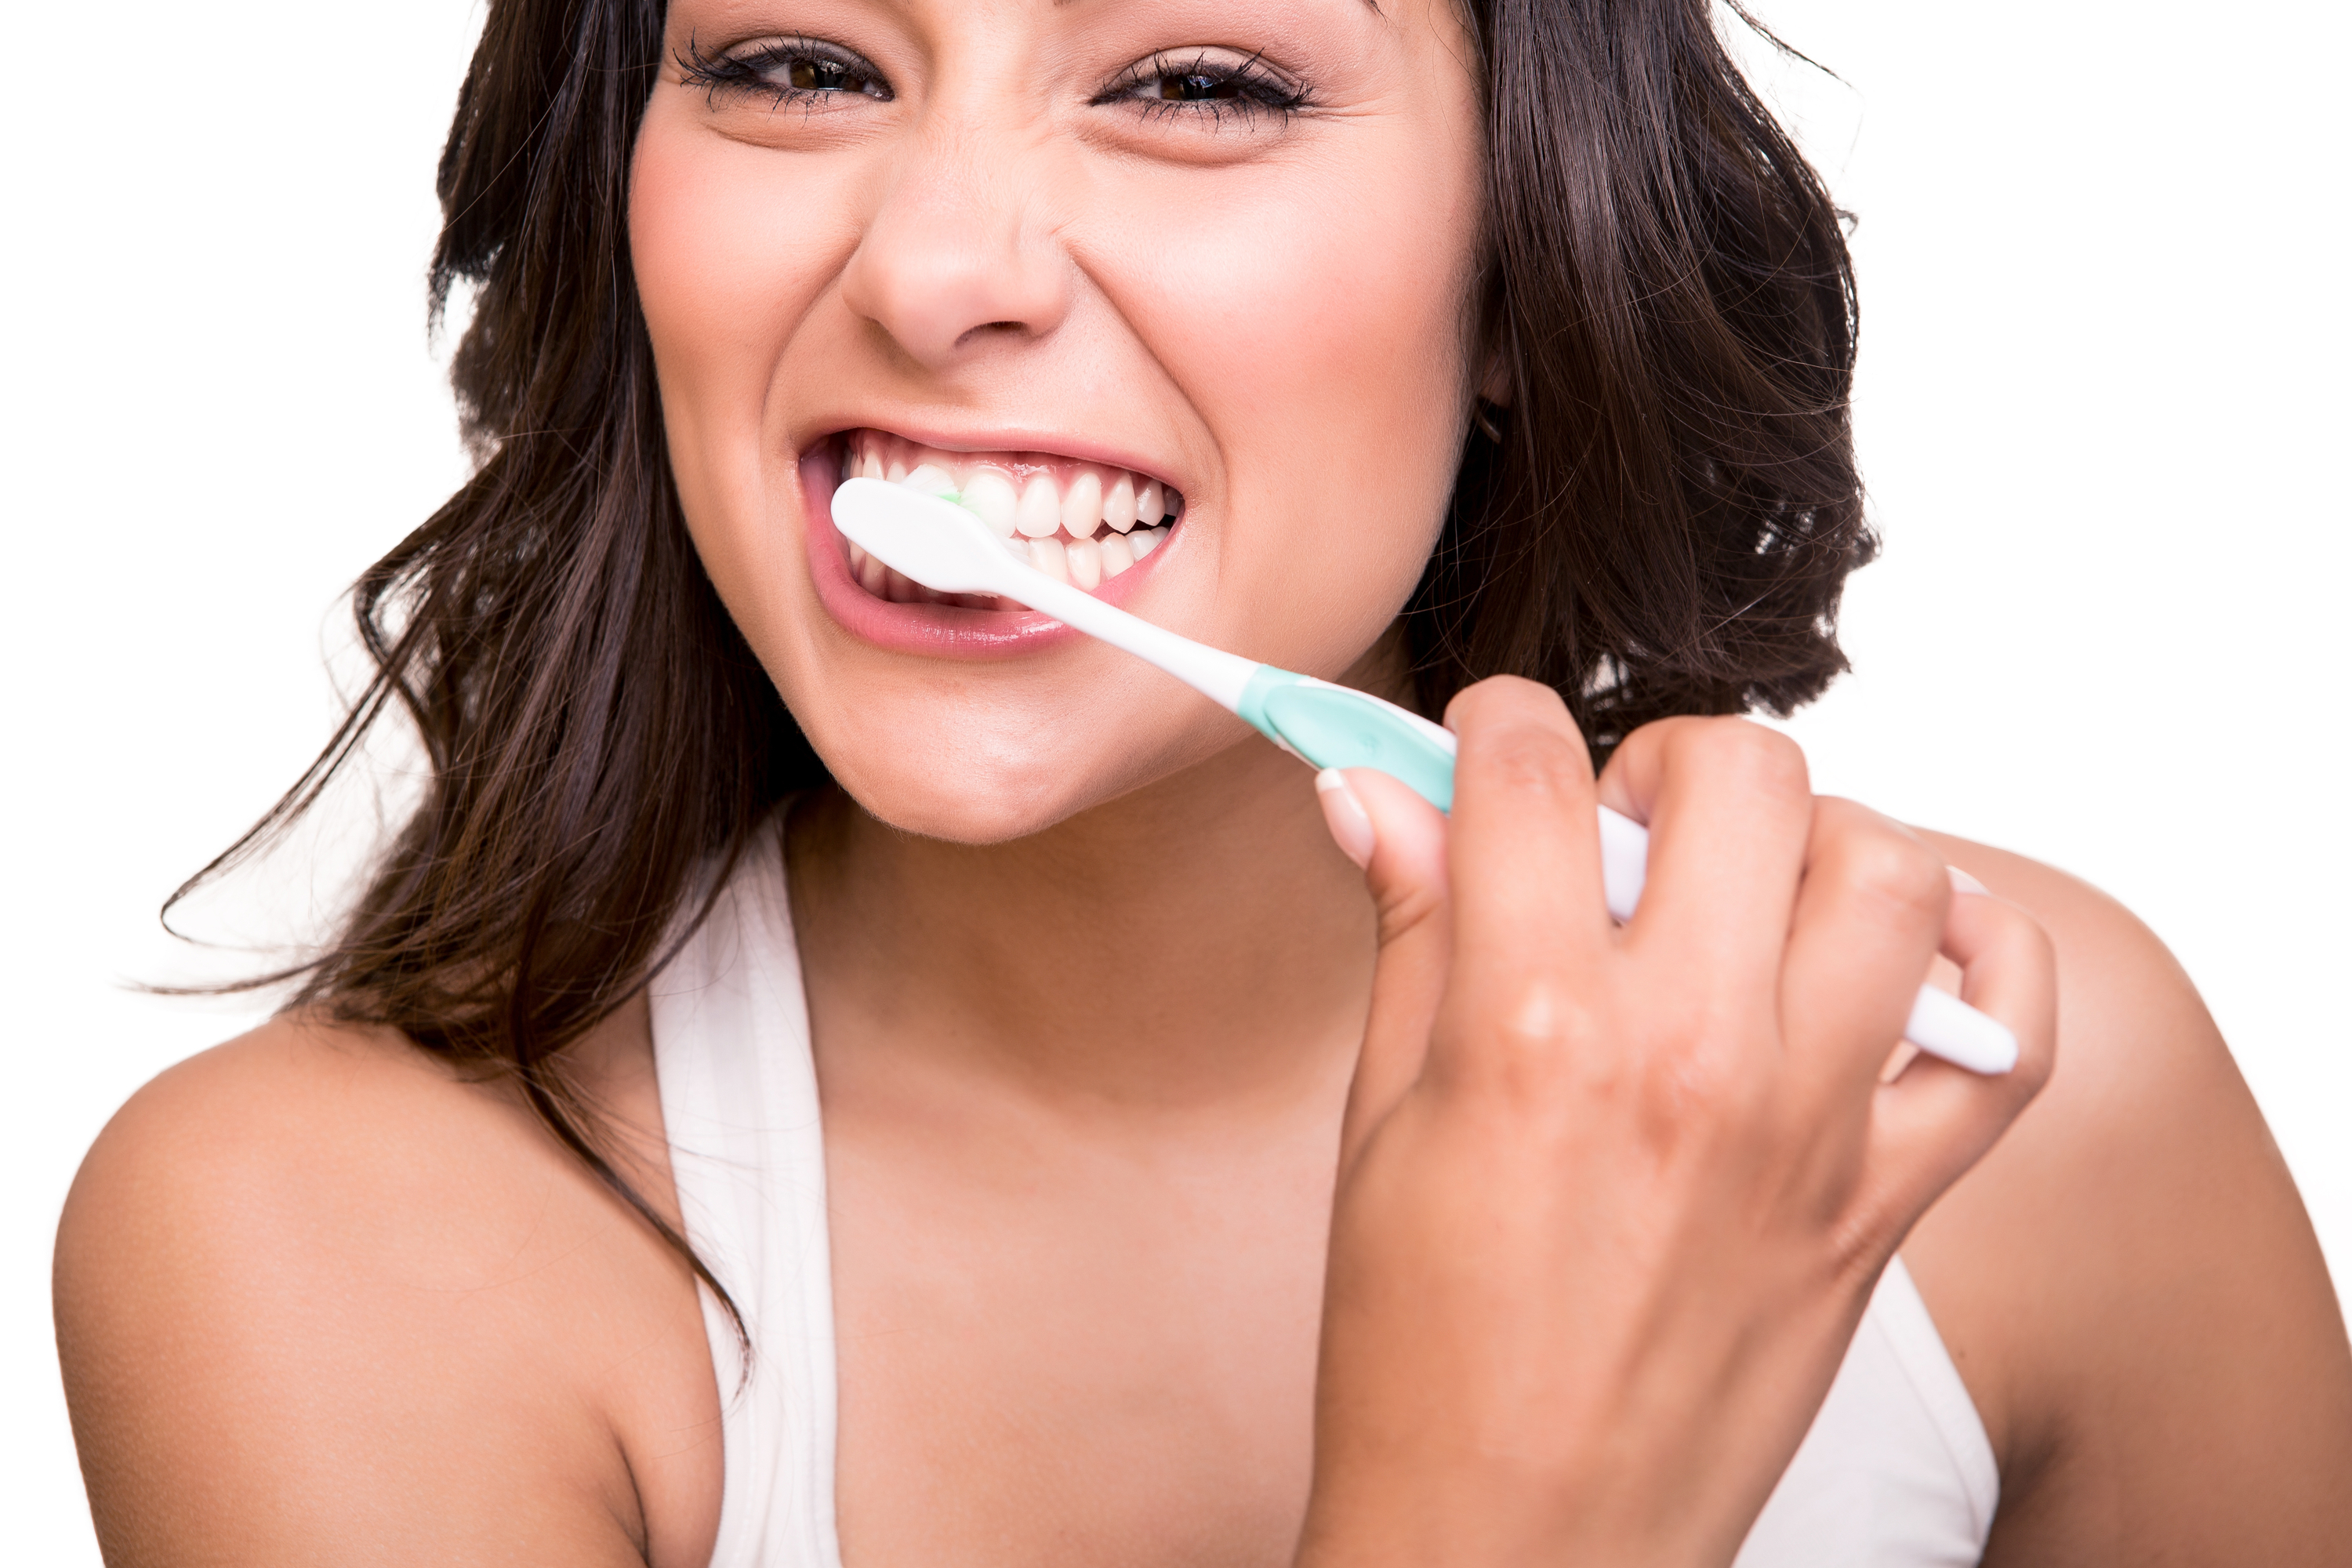 It's important to learn how to brush your teeth correctly. For the best dental hygiene follow these tips on how to brush your teeth correctly. Your mouth will feel so clean!